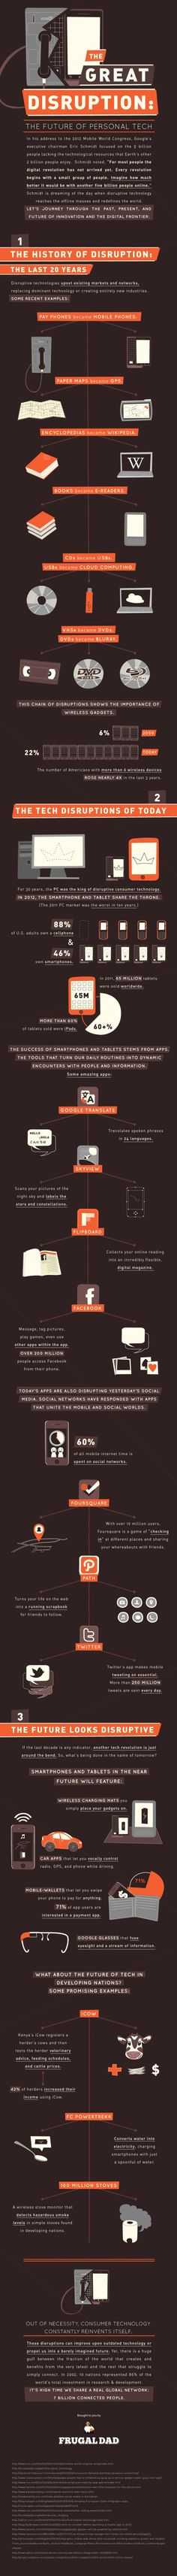 The Great Disruption: The Future of Personal Tech [INFOGRAPHIC]